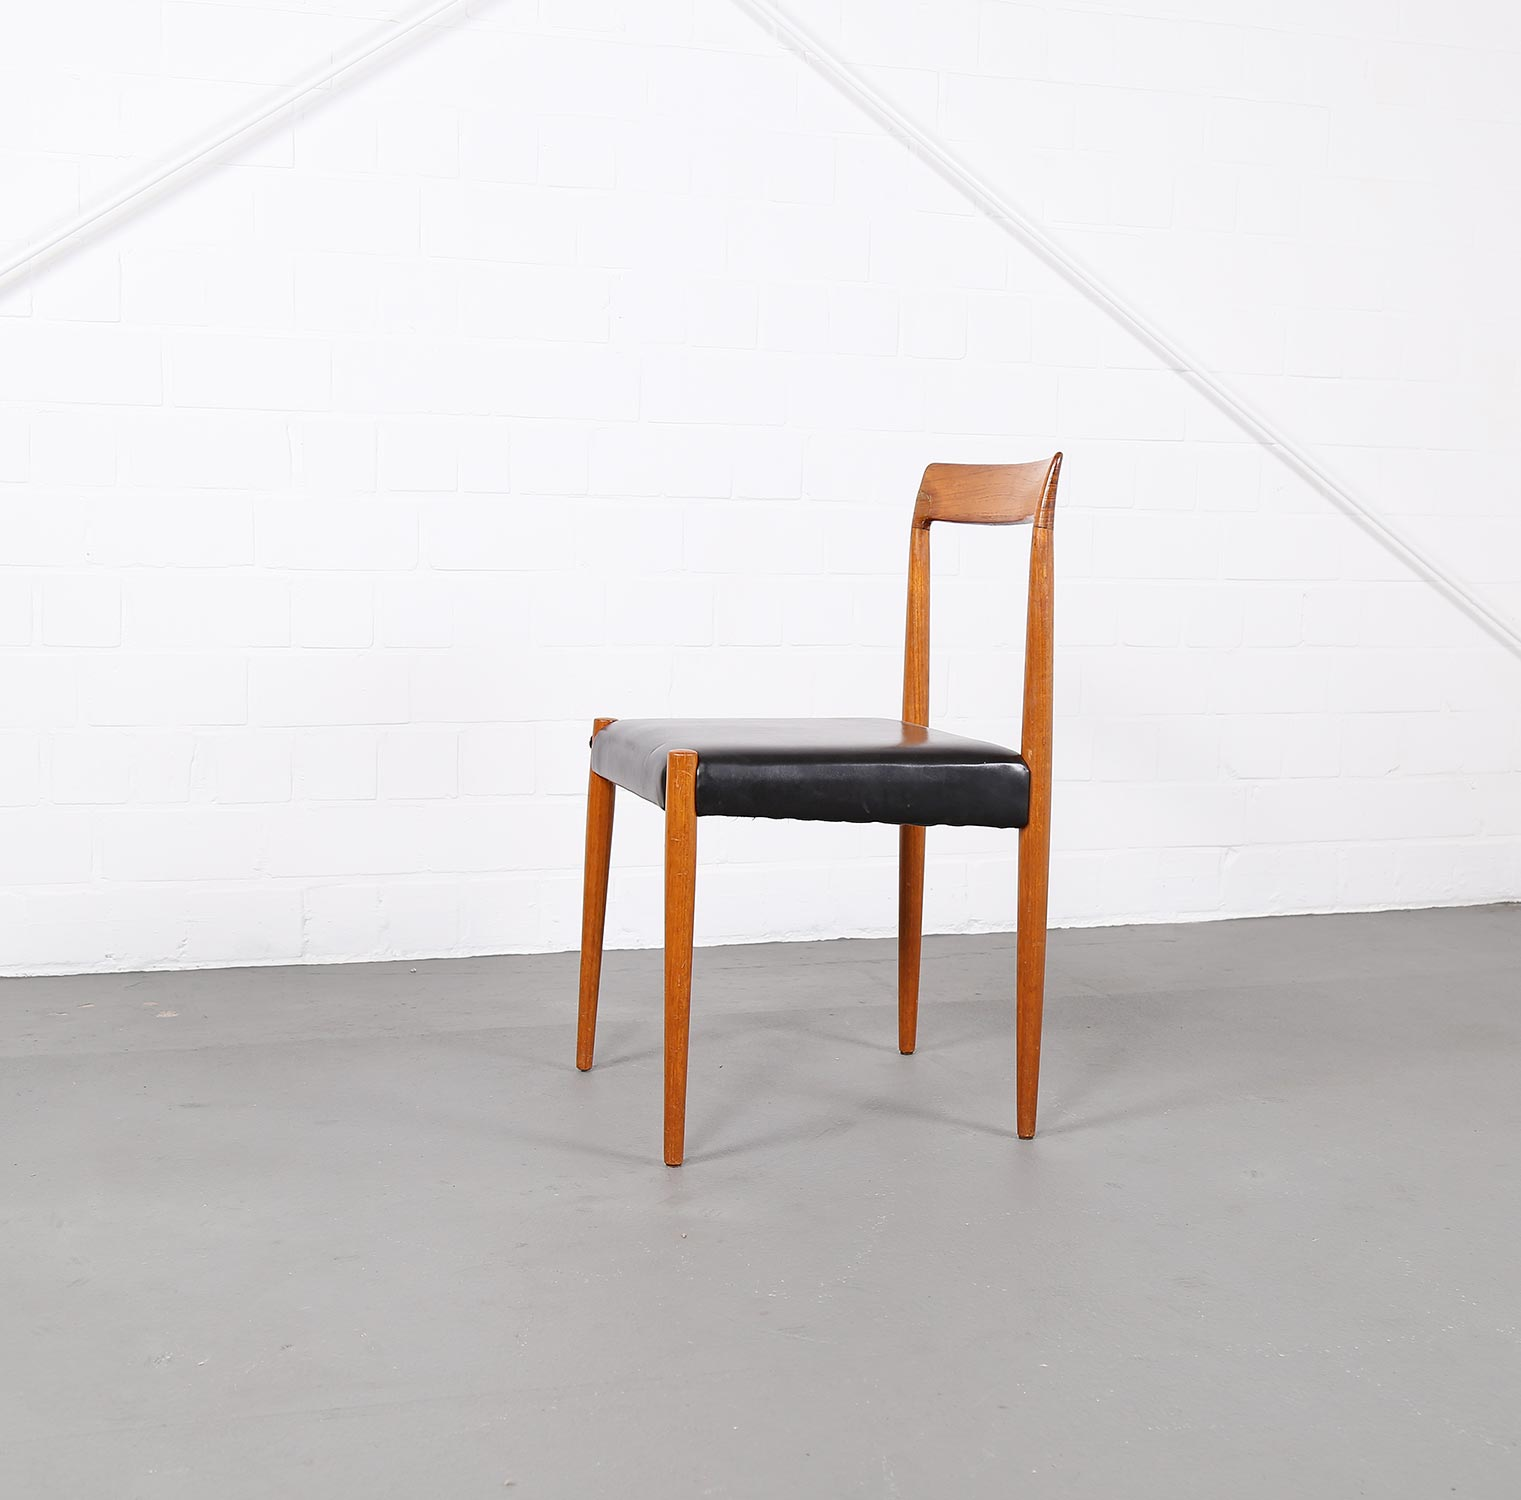 Danish design teak chair 60s luebke gebraucht used classic for Designer chairs from the 60s